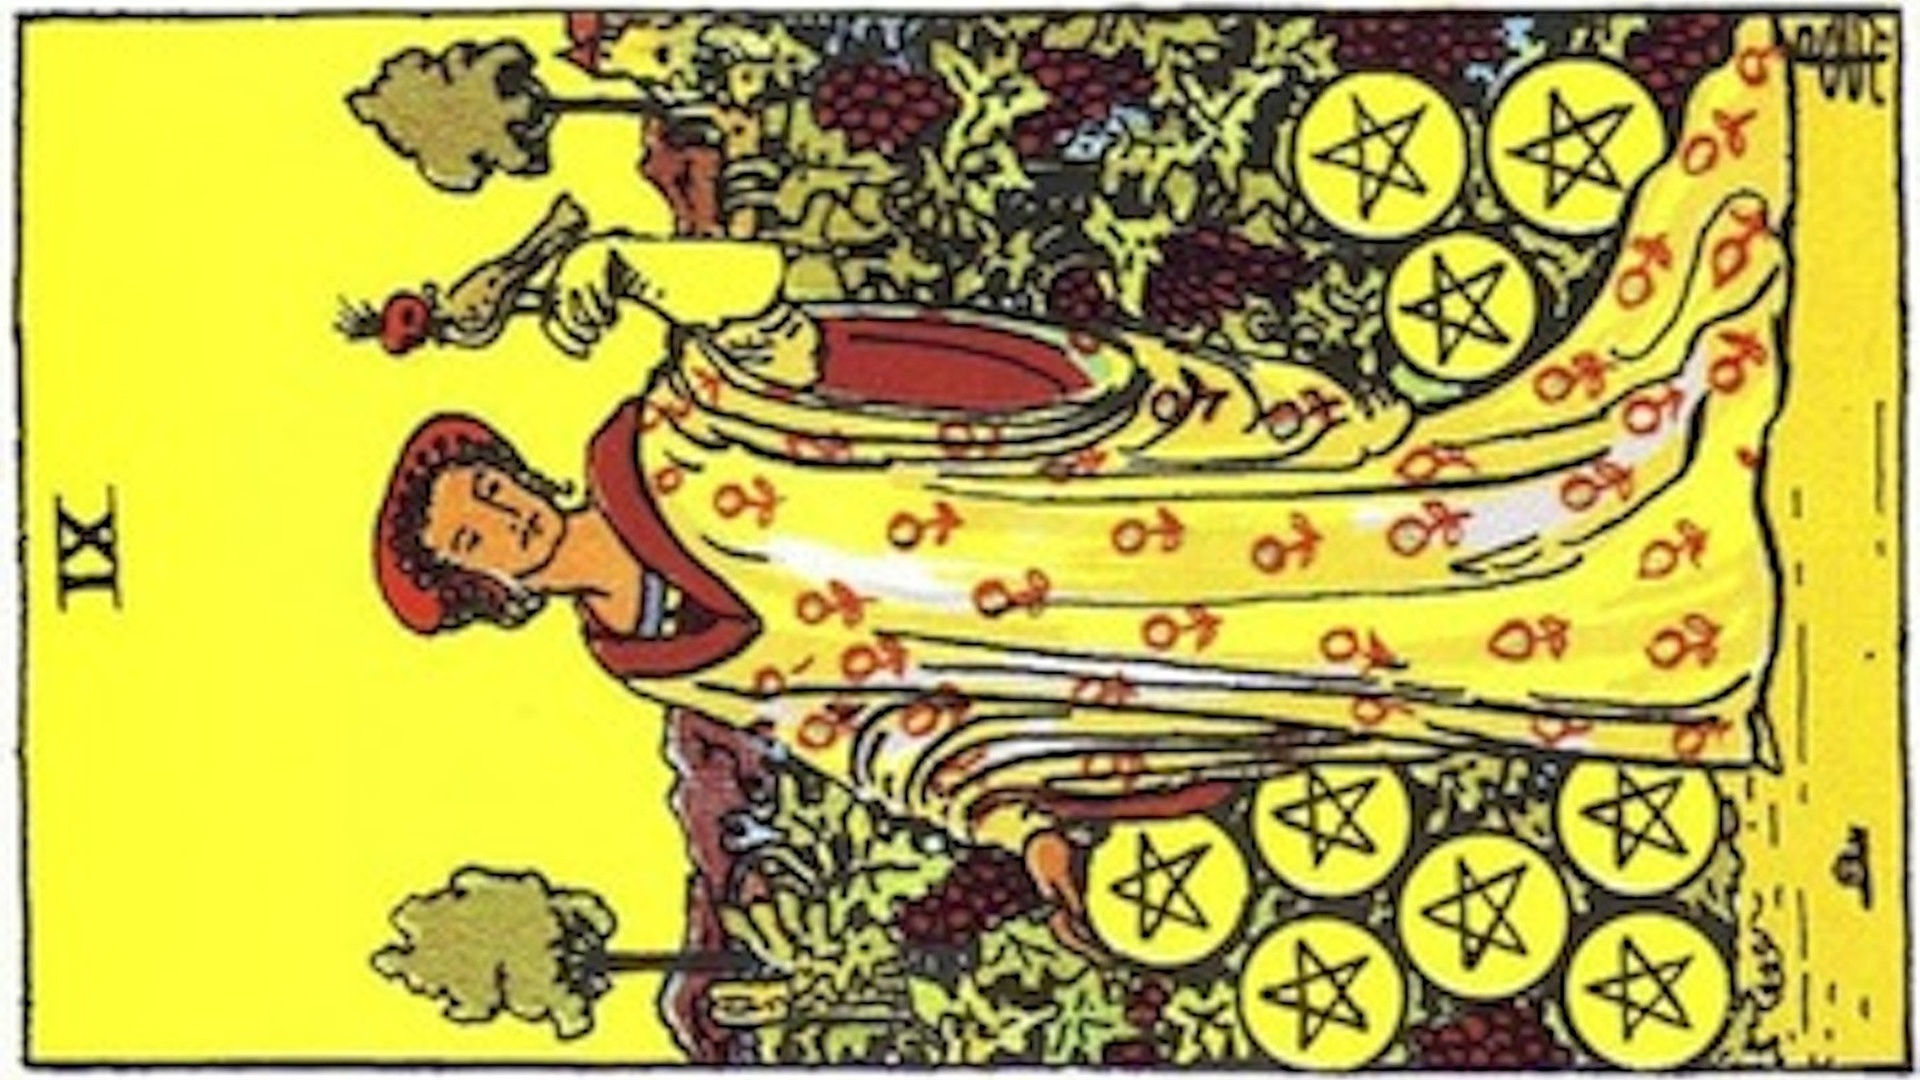 The Nine of Pentacles